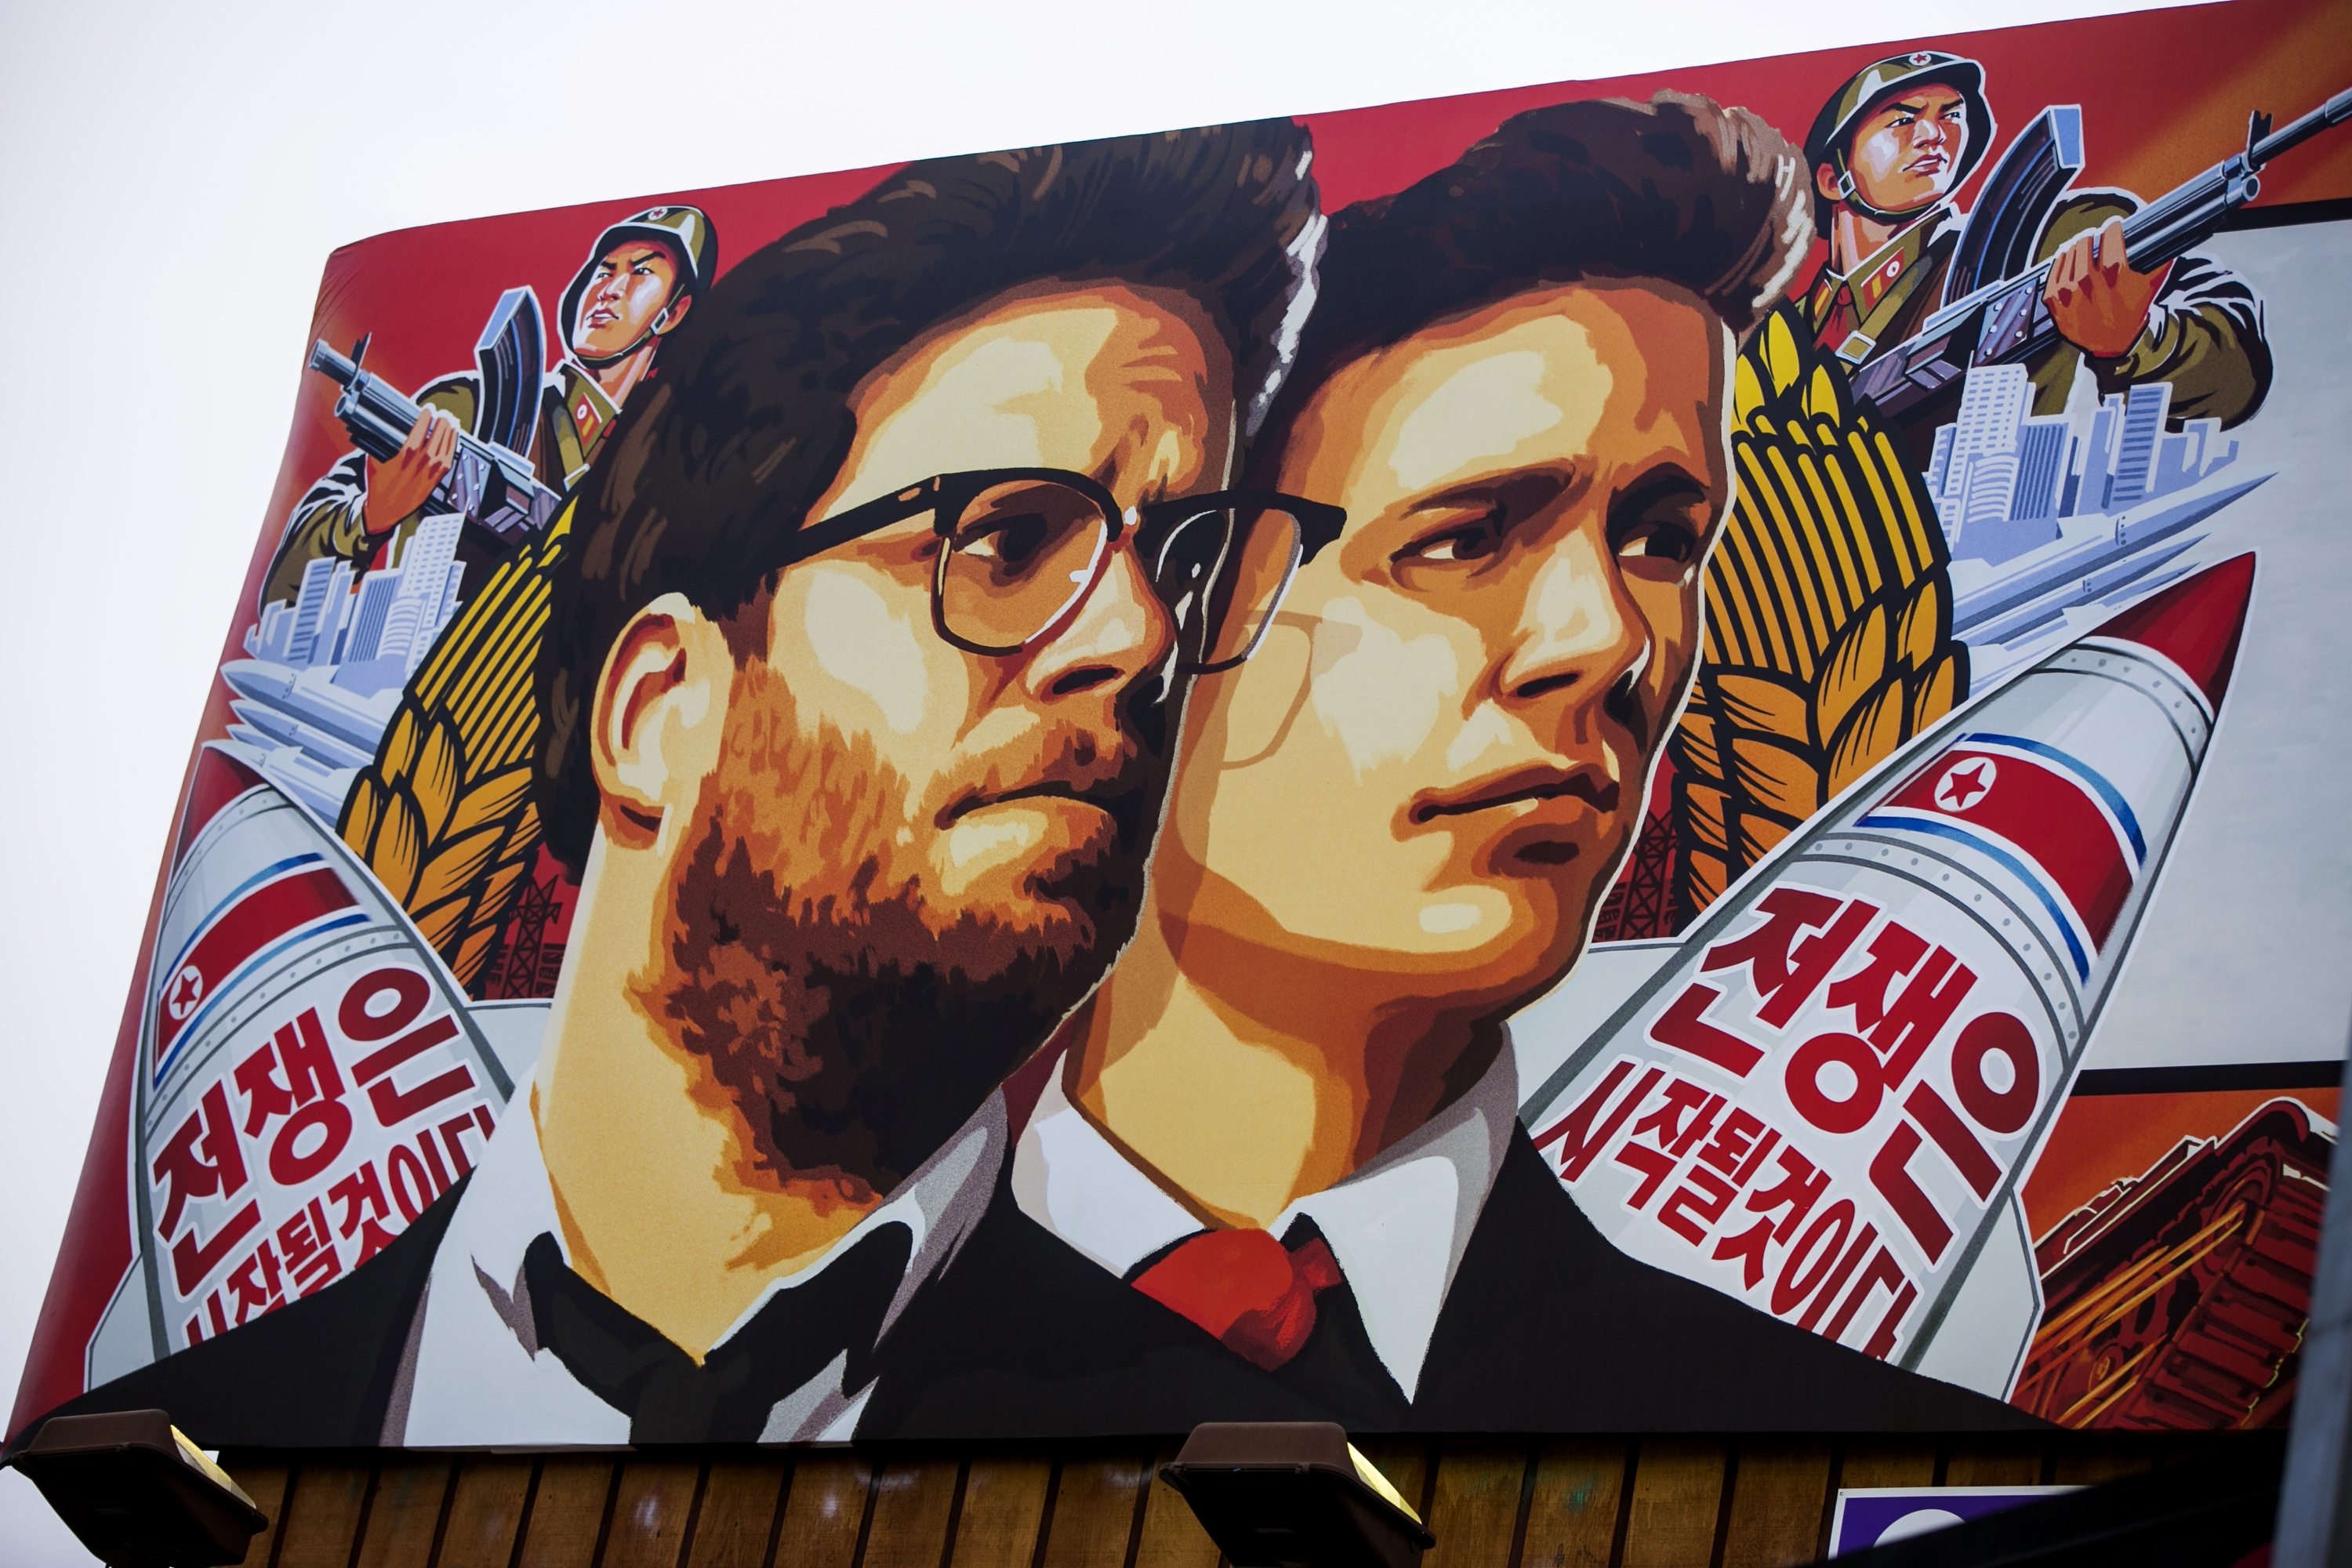 Sony should have known better than to approve a film depicting the assassination of a world leader. (AP photo)